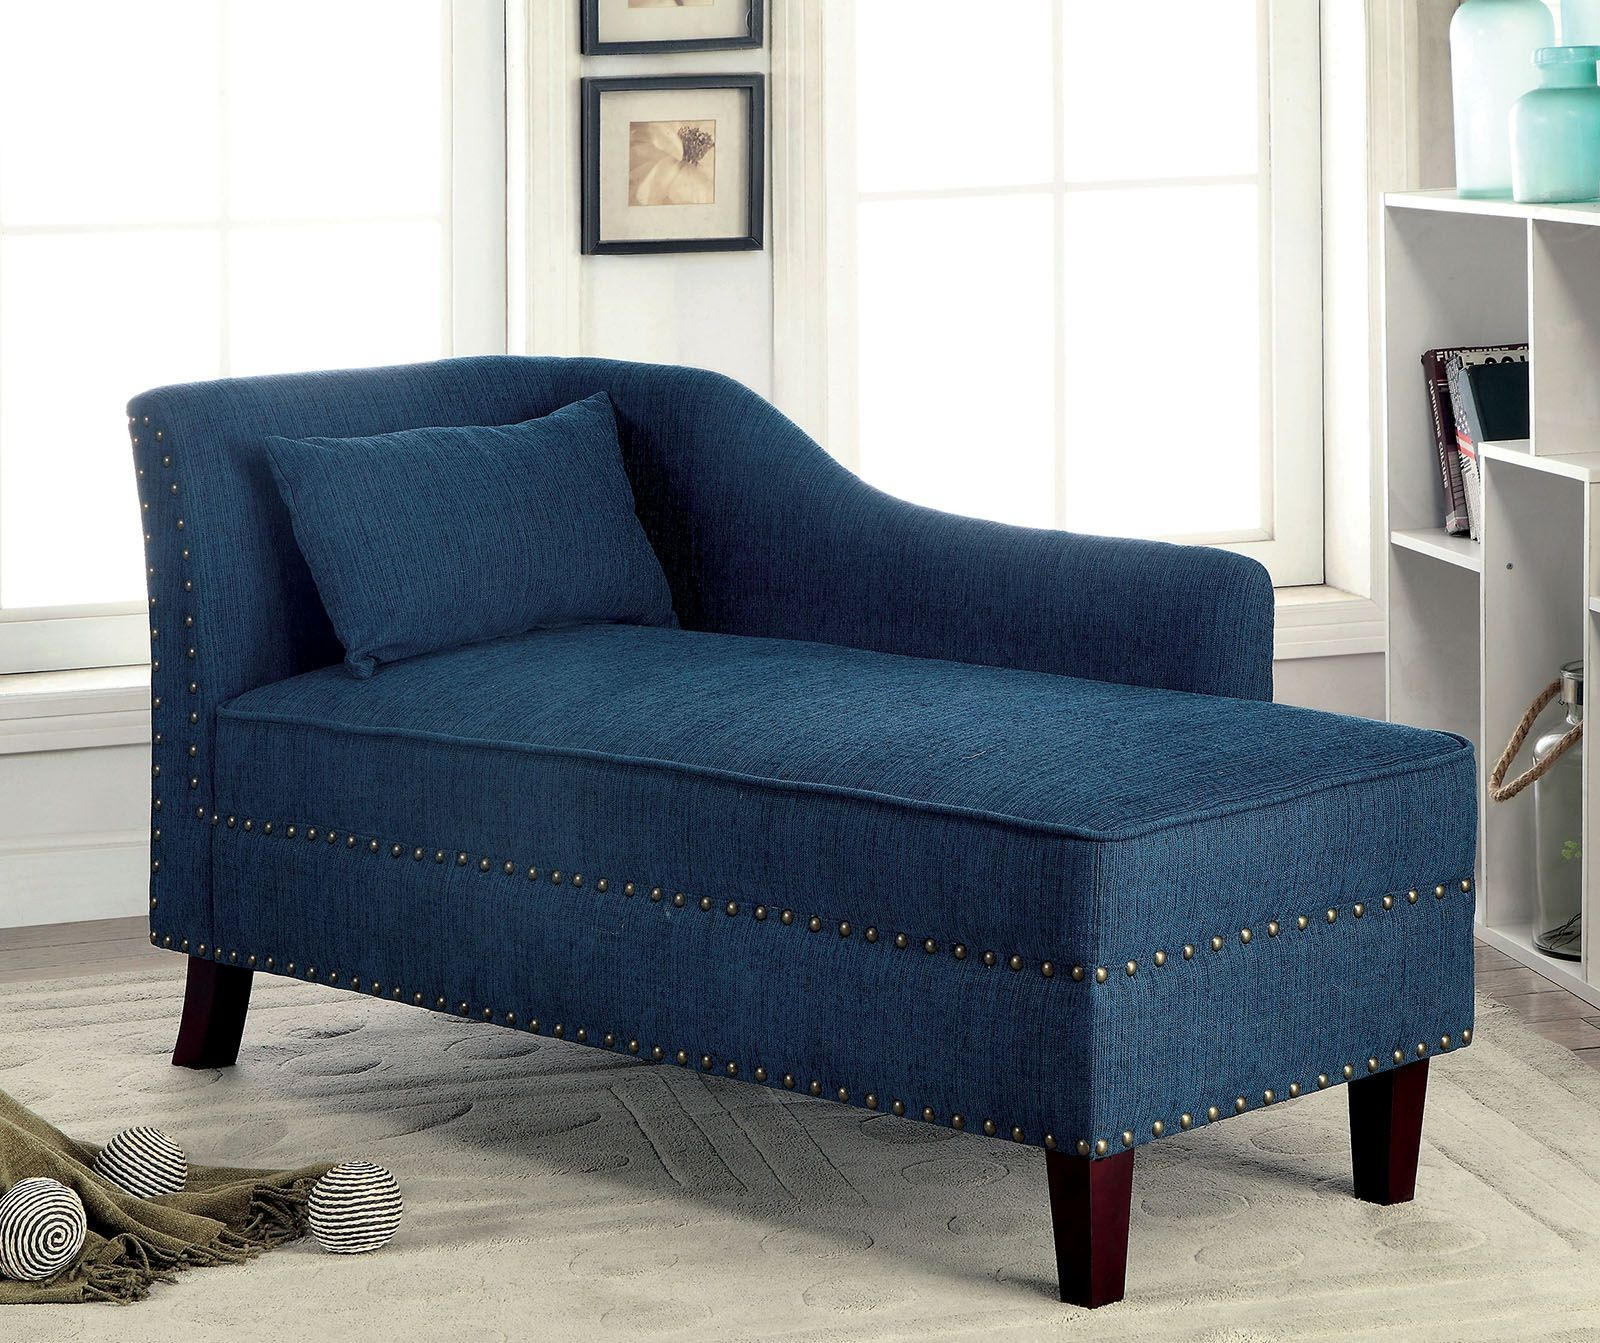 dark teal chair bedroom green stillwater fabric chaise from furniture of